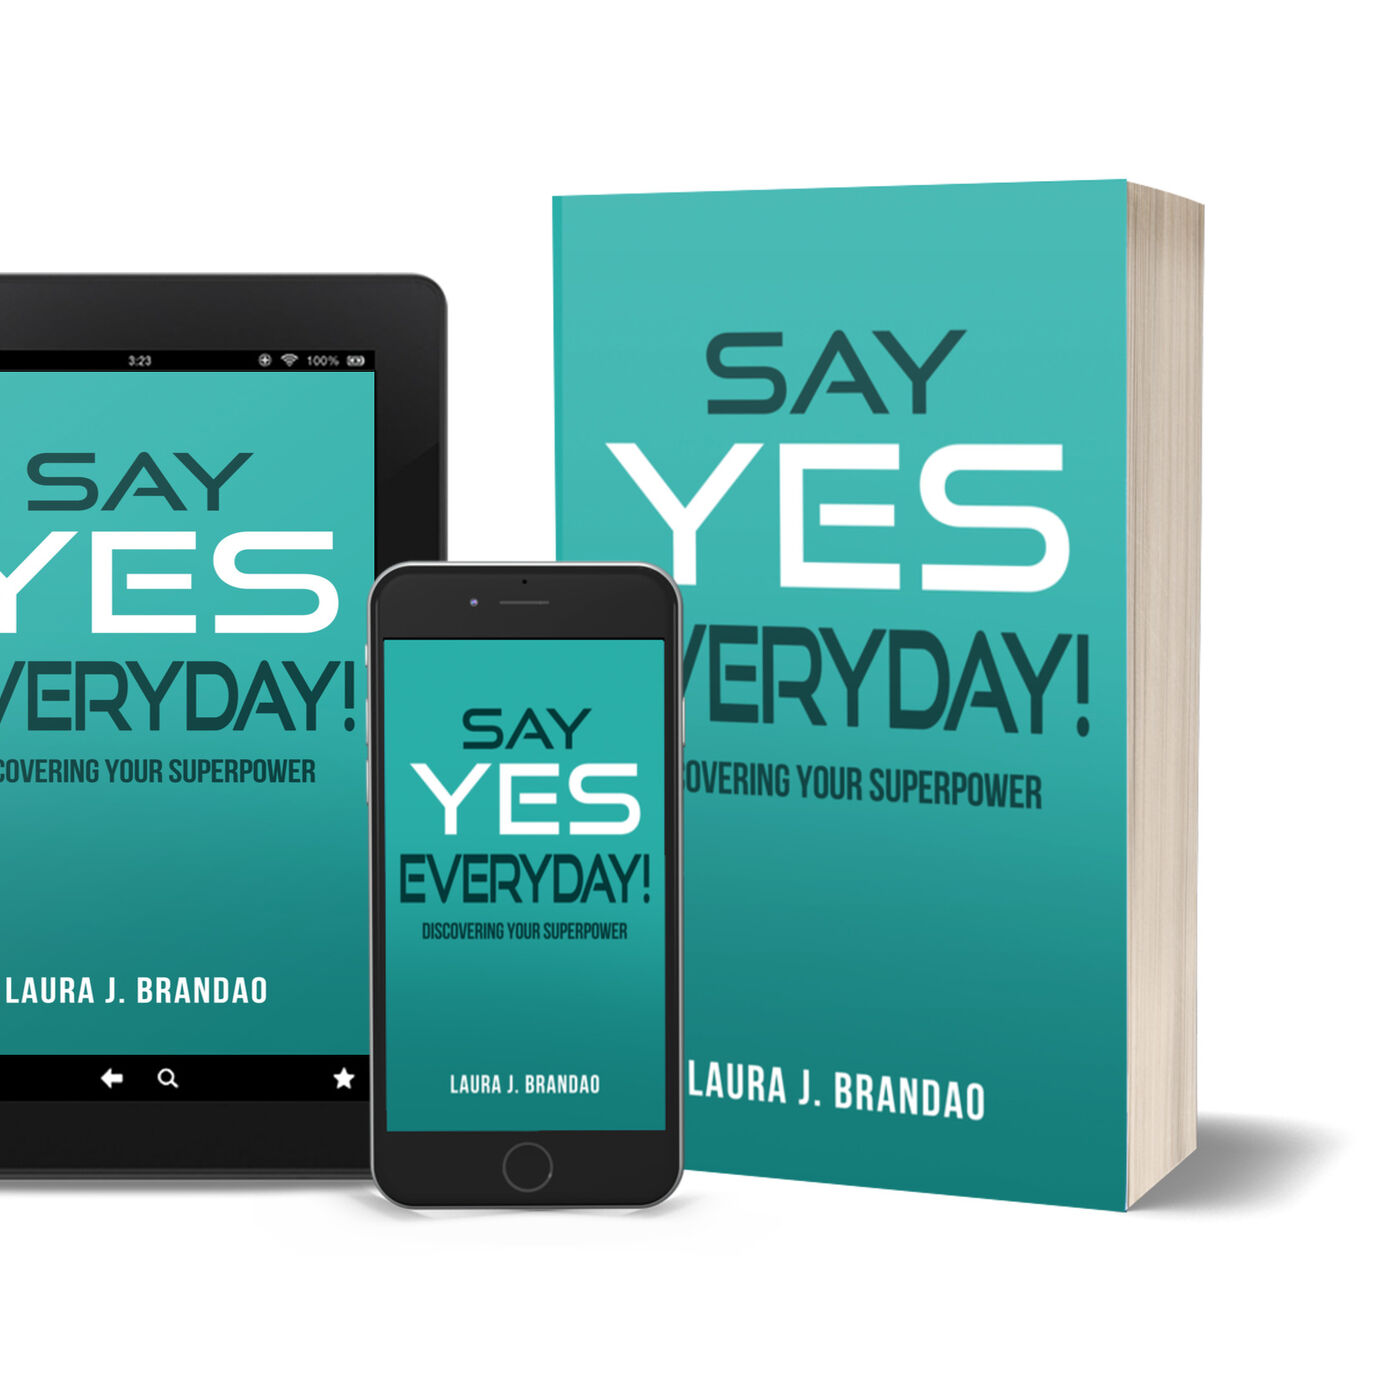 Say Yes Everyday! Interview with Laura Brandao